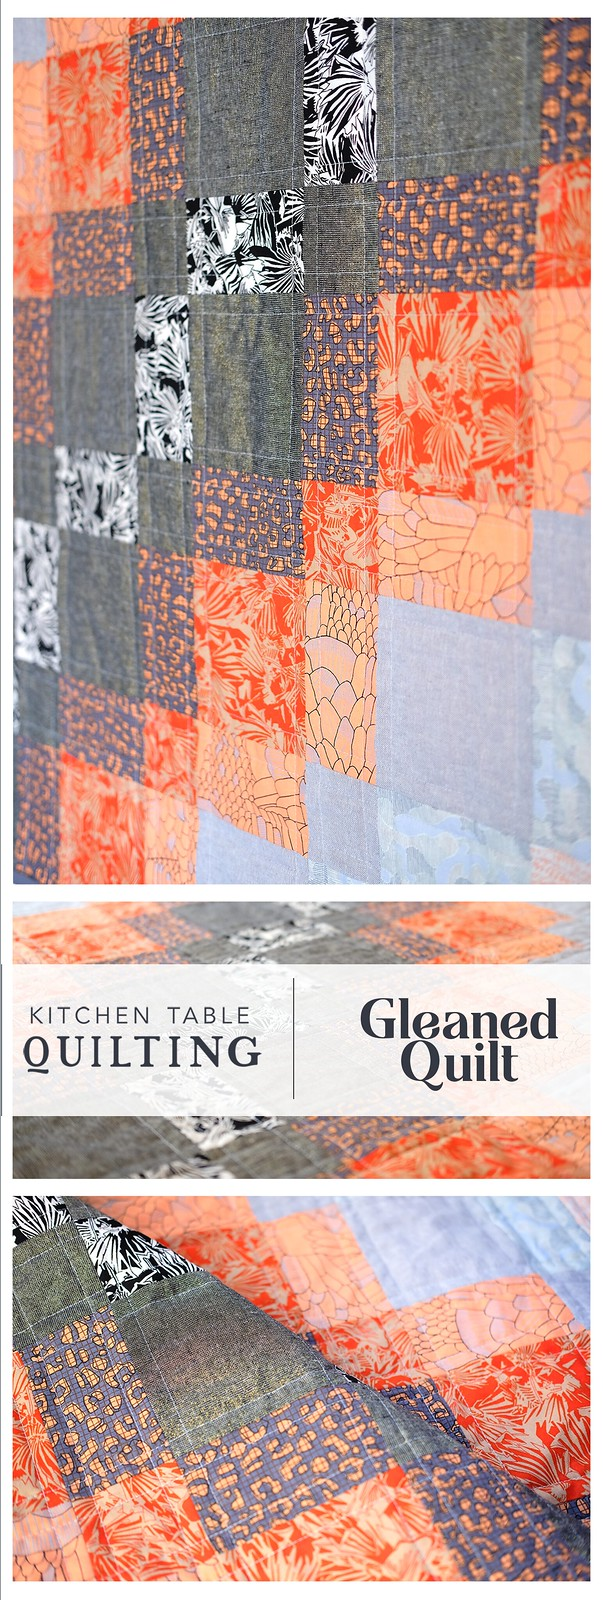 Gleaned Baby Quilt - Kitchen Table Quilting